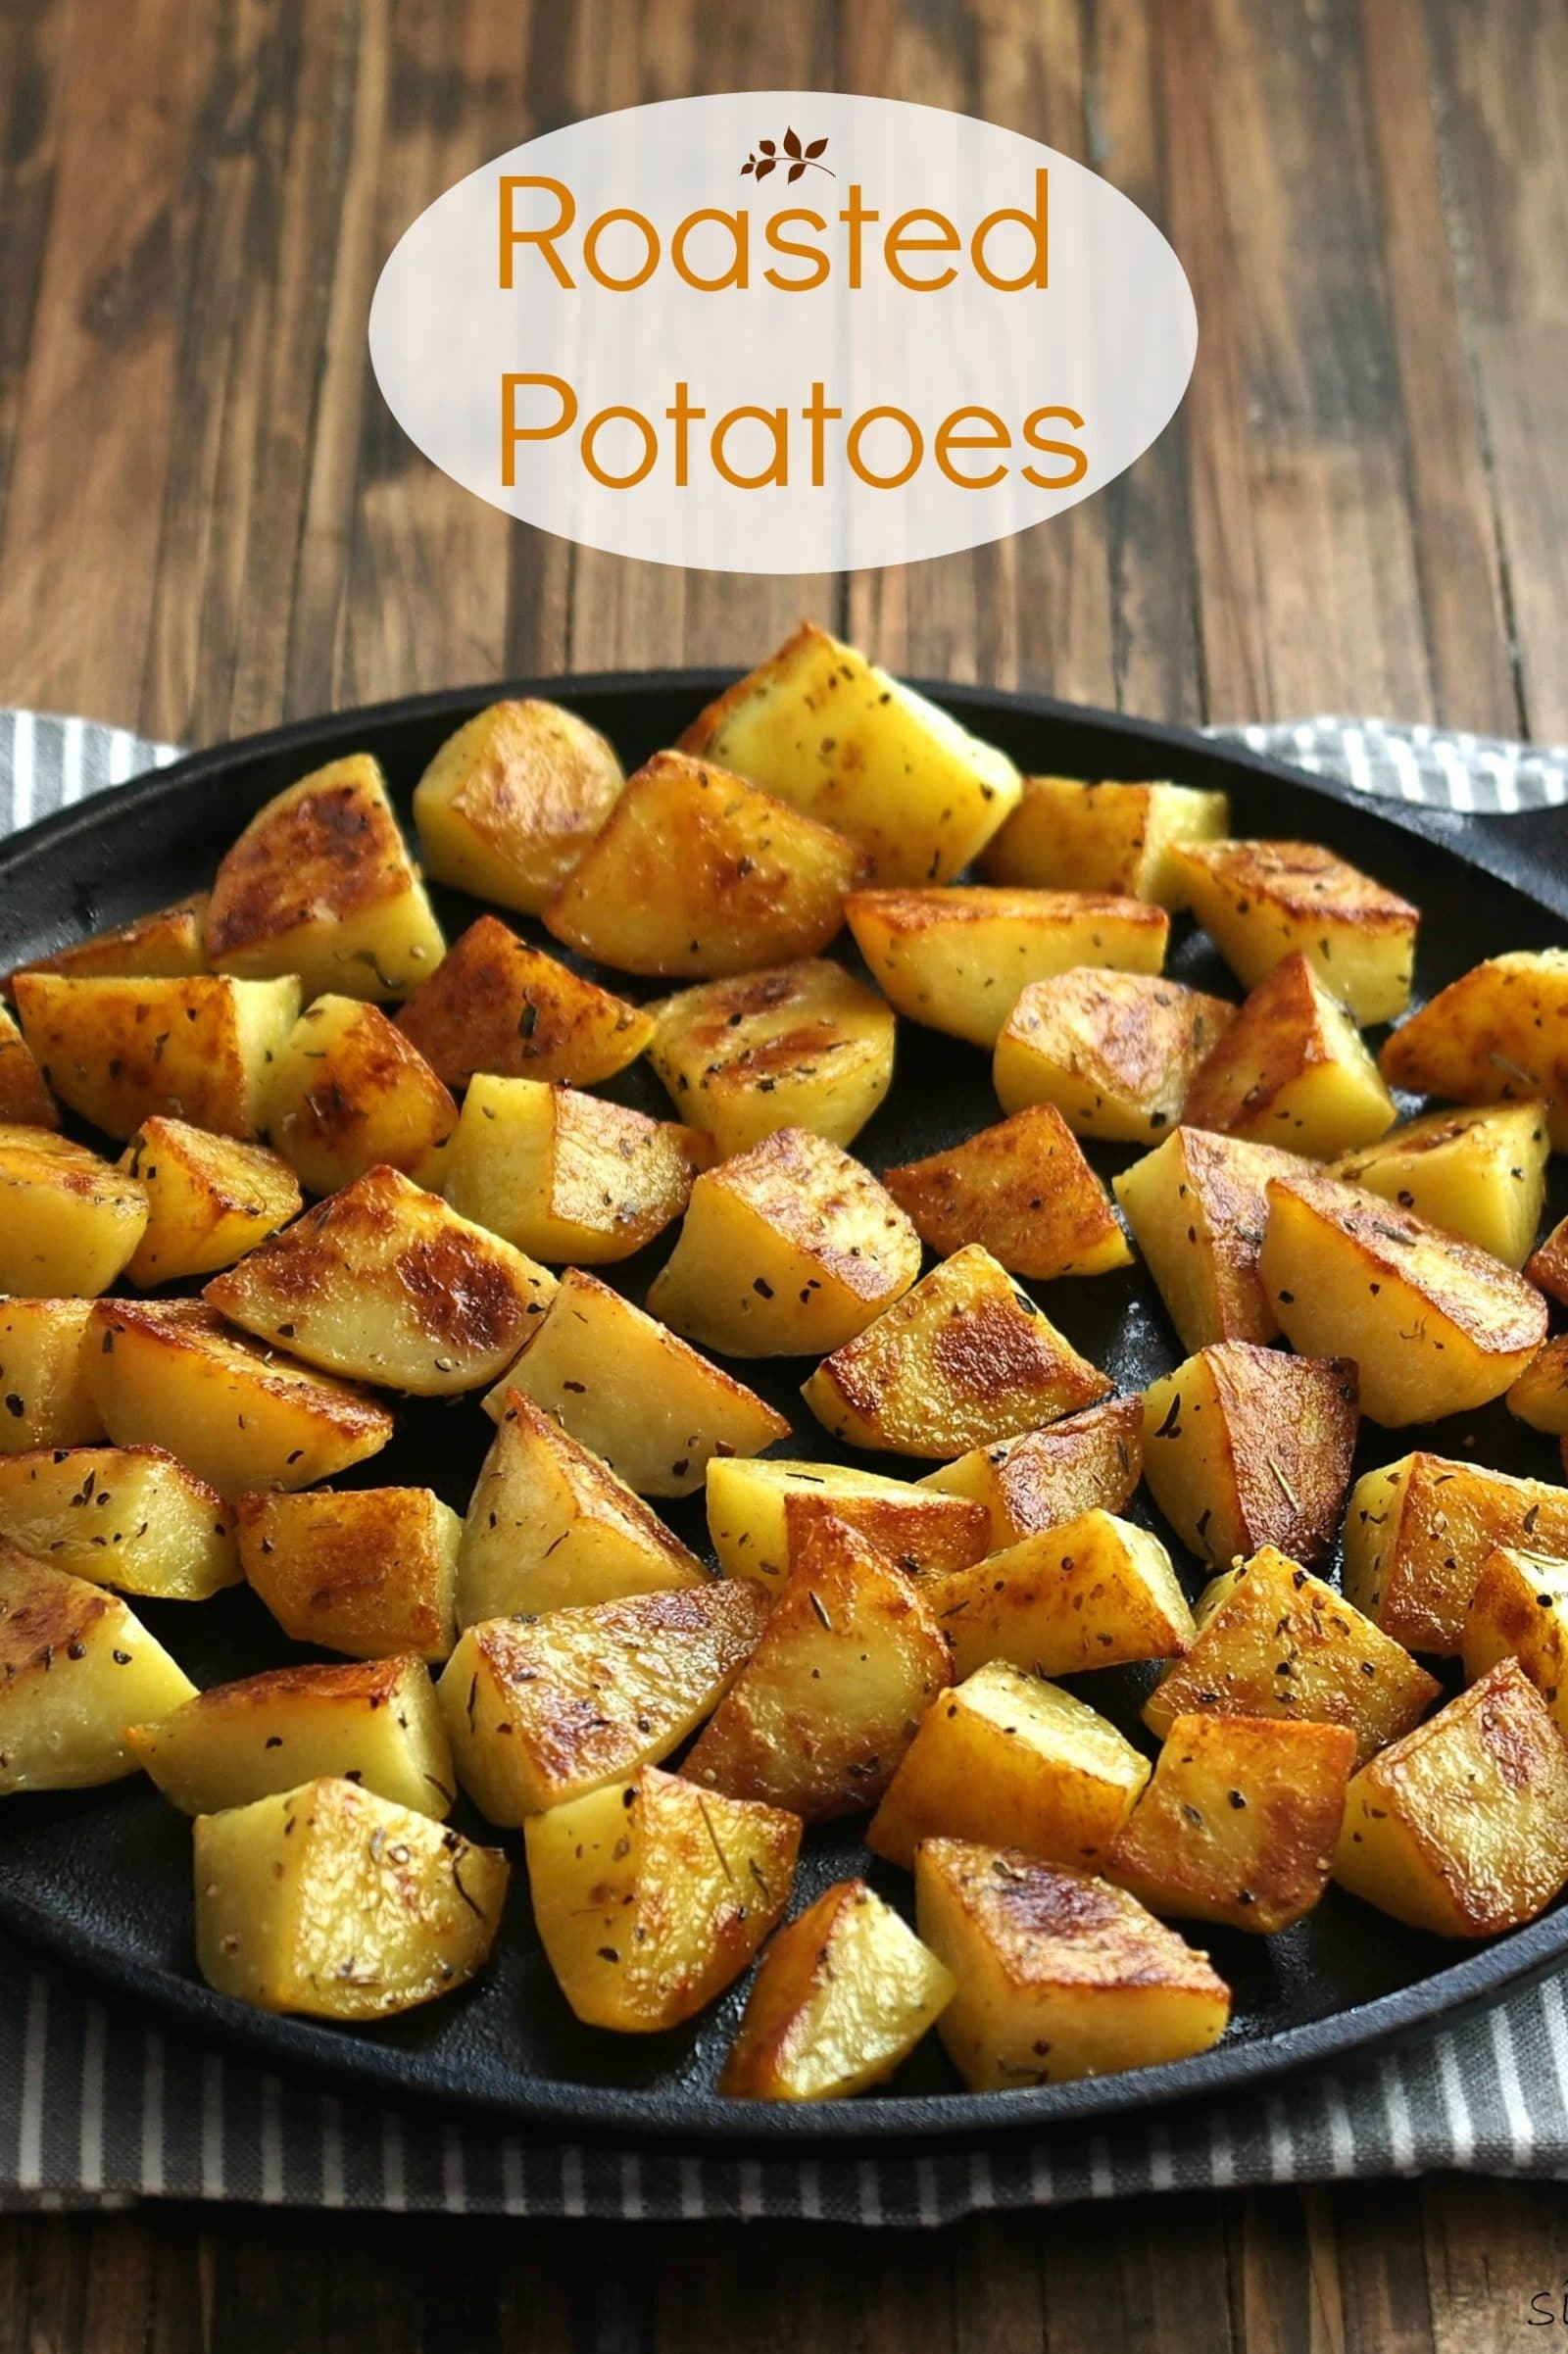 Roasted Potatoes - Simply Sated